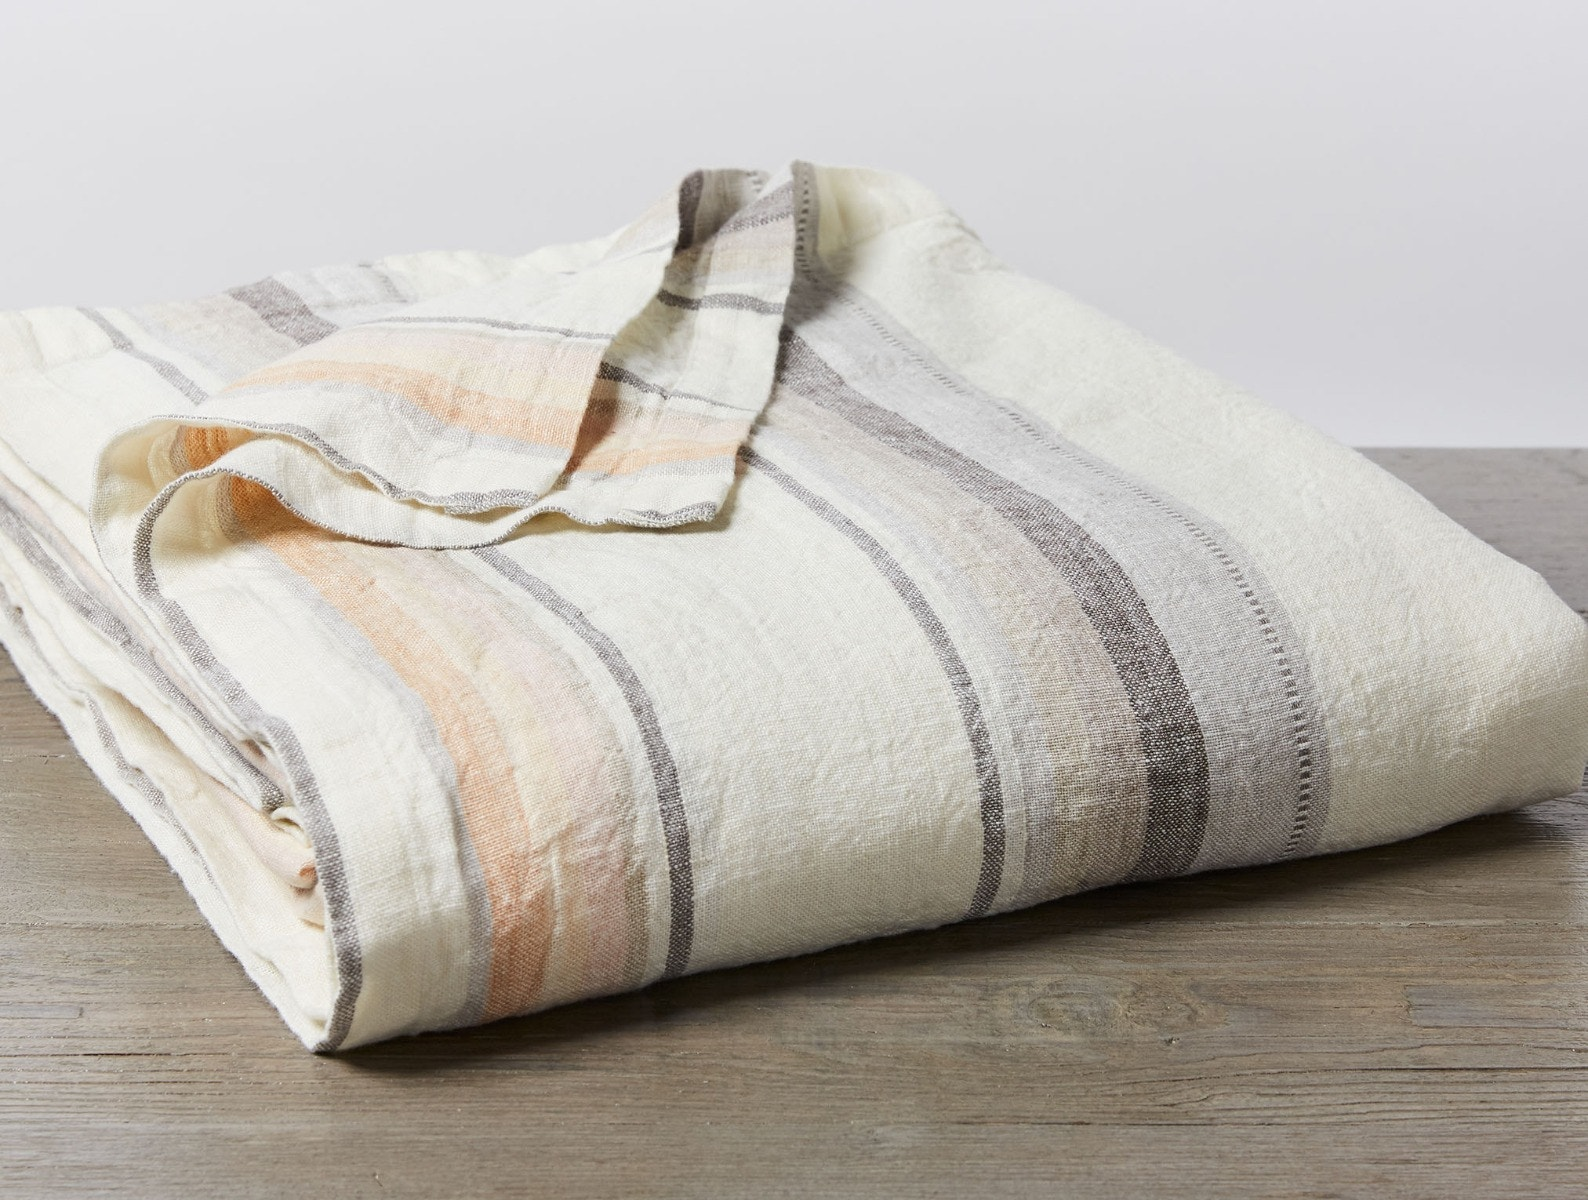 striped linen blanket on wood table